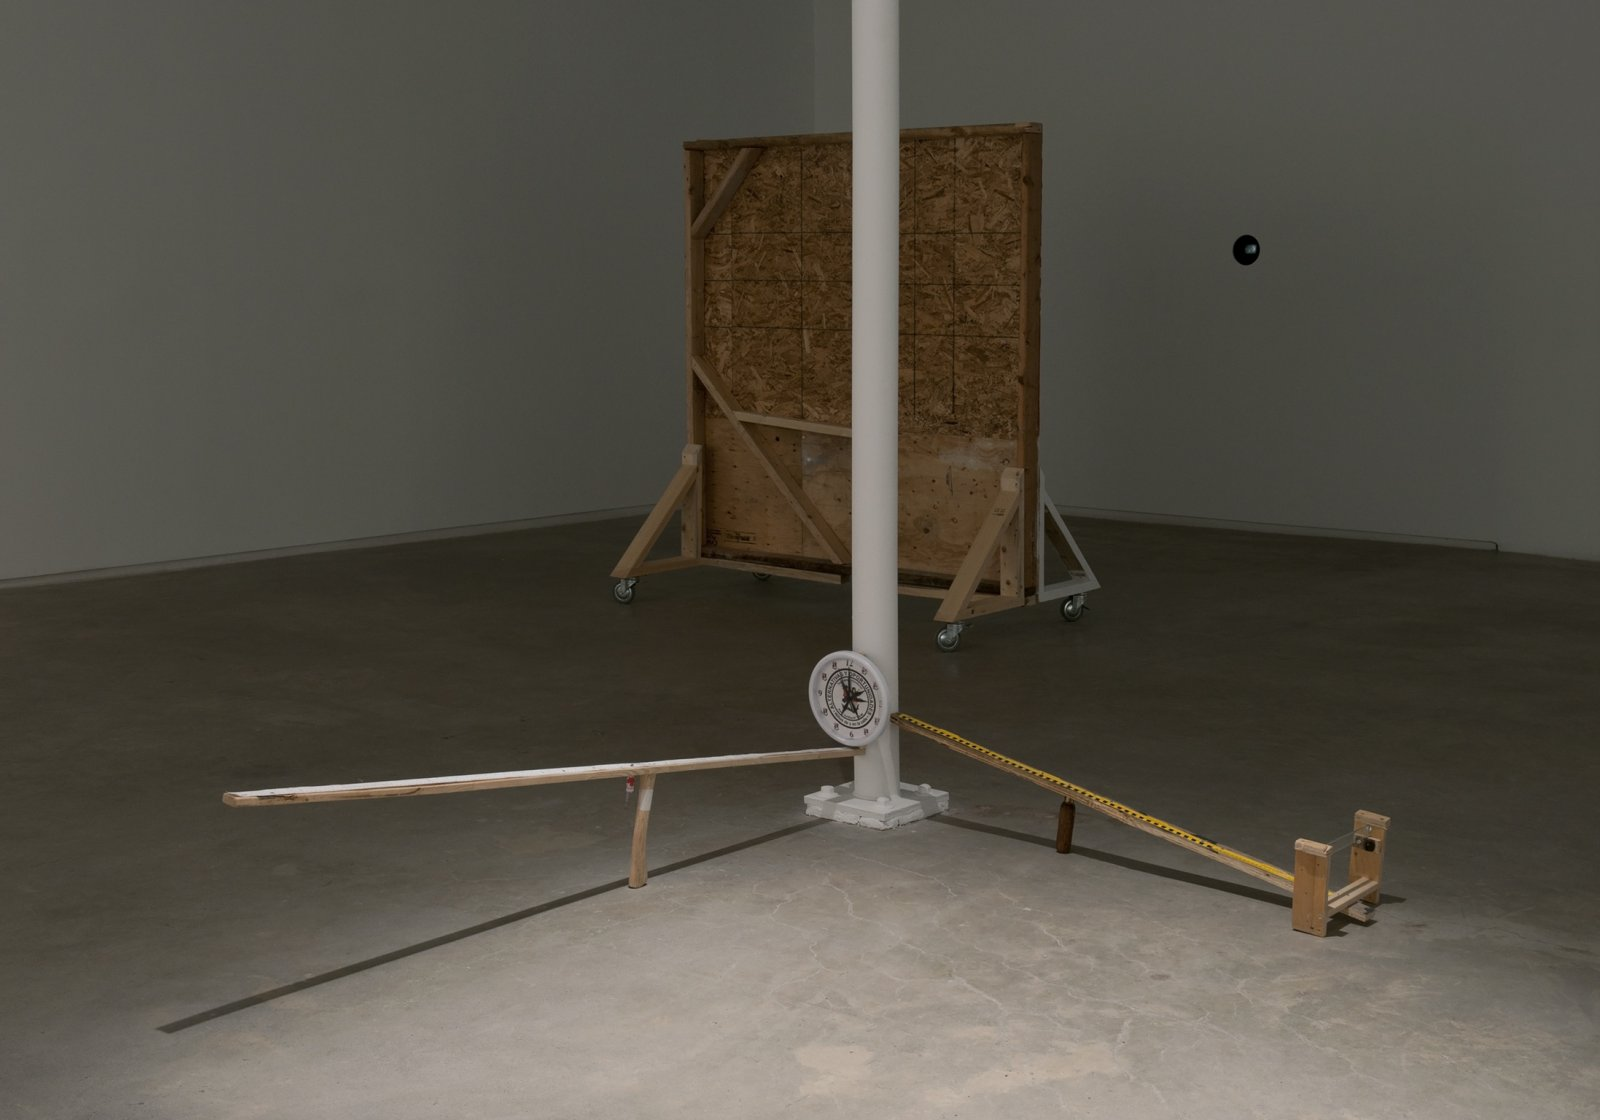 Julia Feyrer, installation view, Alternatives and Opportunities, Catriona Jeffries, 2012 by Julia Feyrer